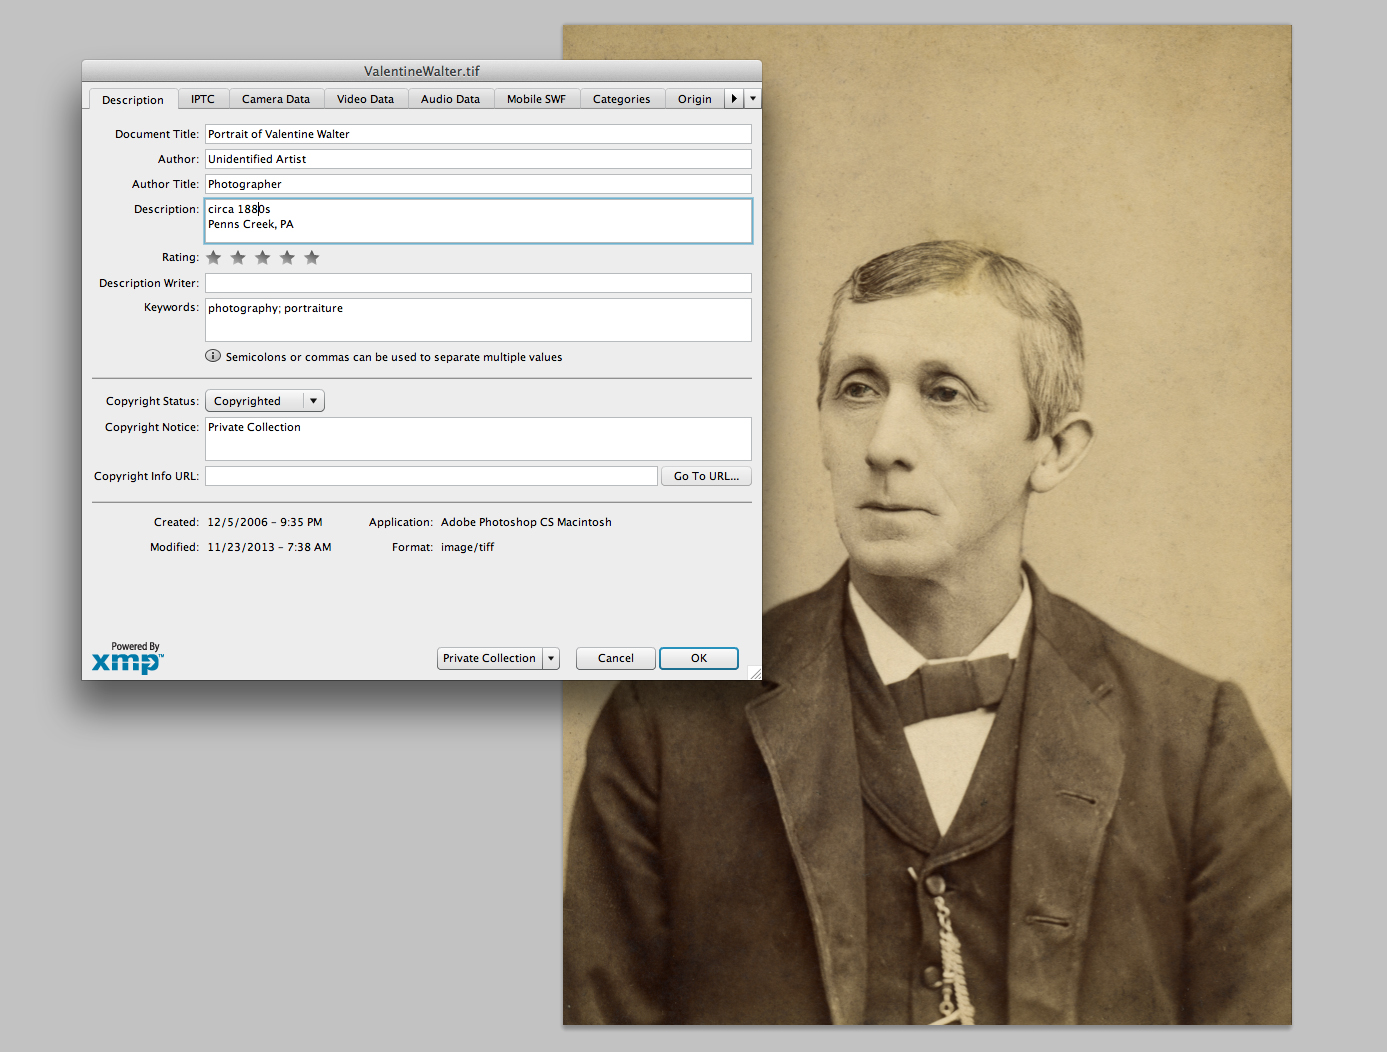 Digital Archiving (with embedded metadata)